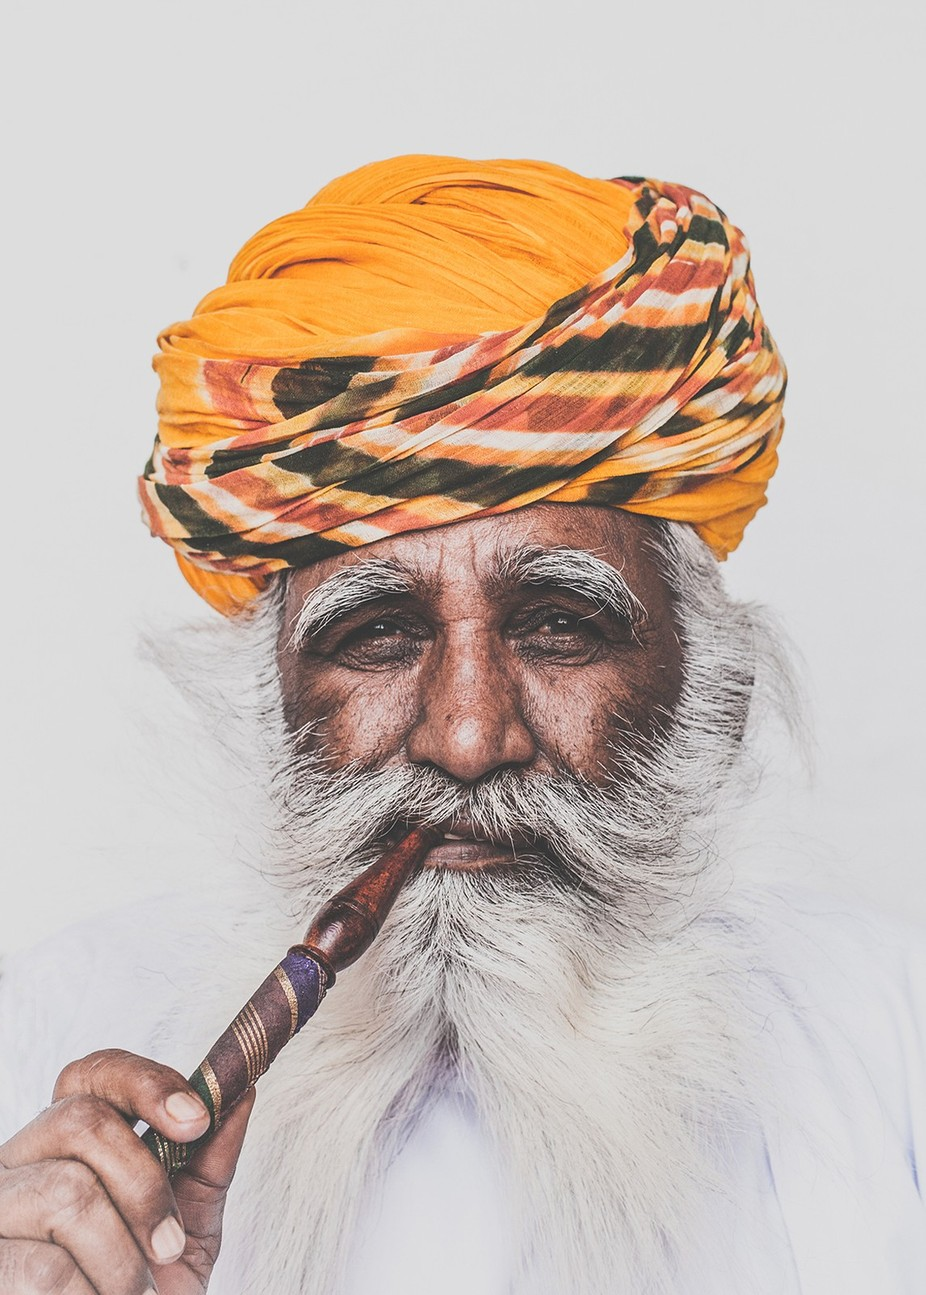 A Man and his Pipe by lukegram - Cultures of the World Photo Contest